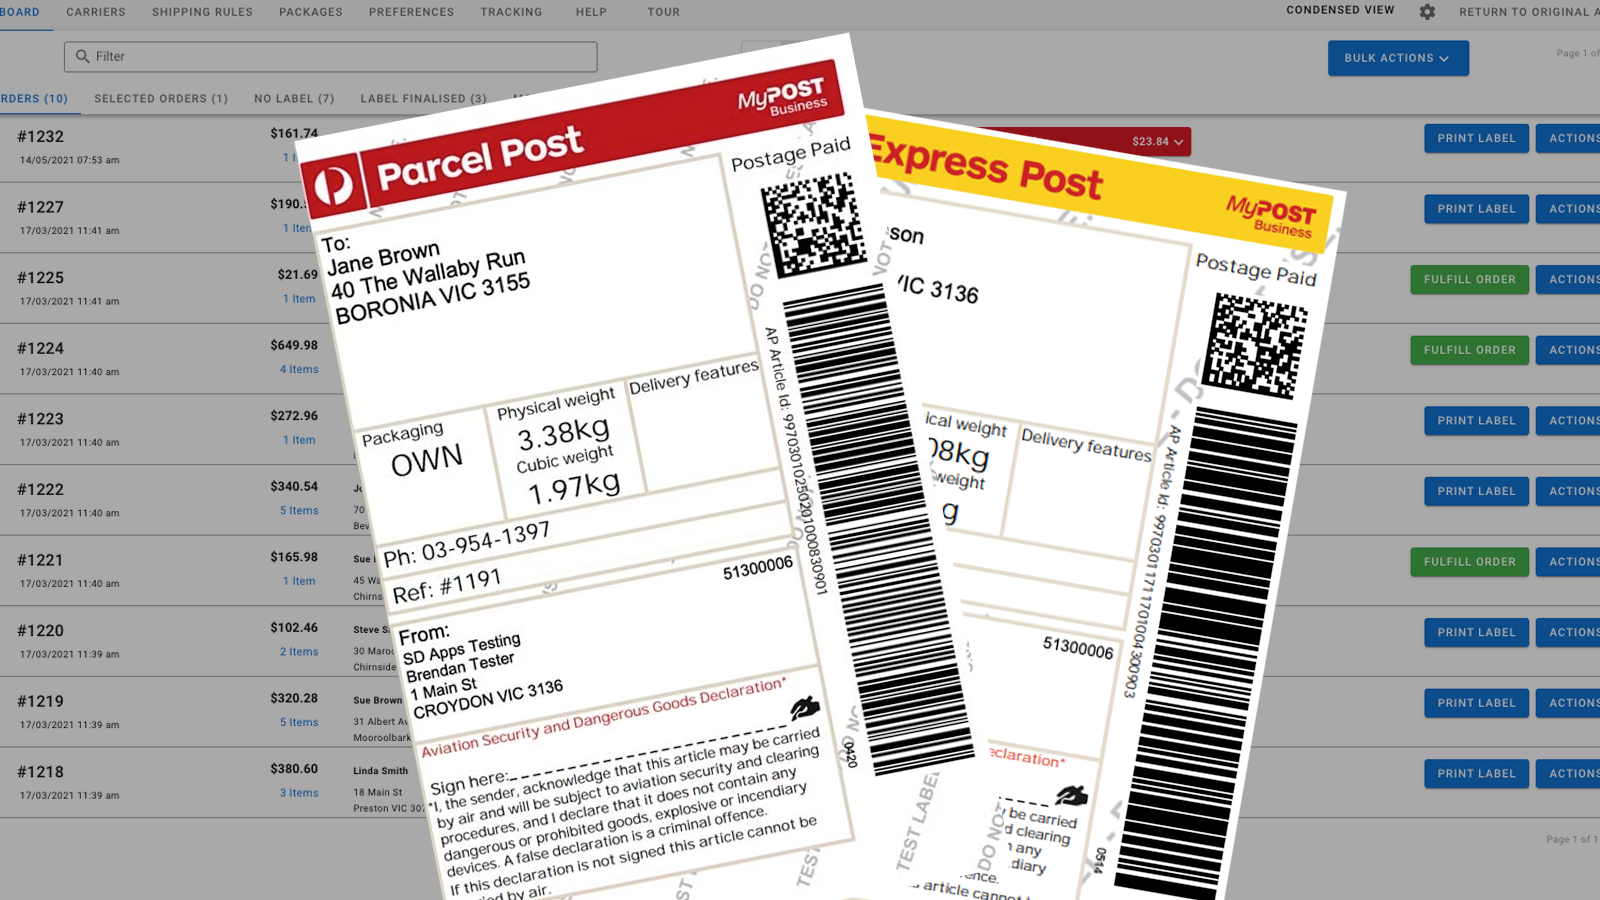 Pay and Print Auspost labels WITHIN the app!